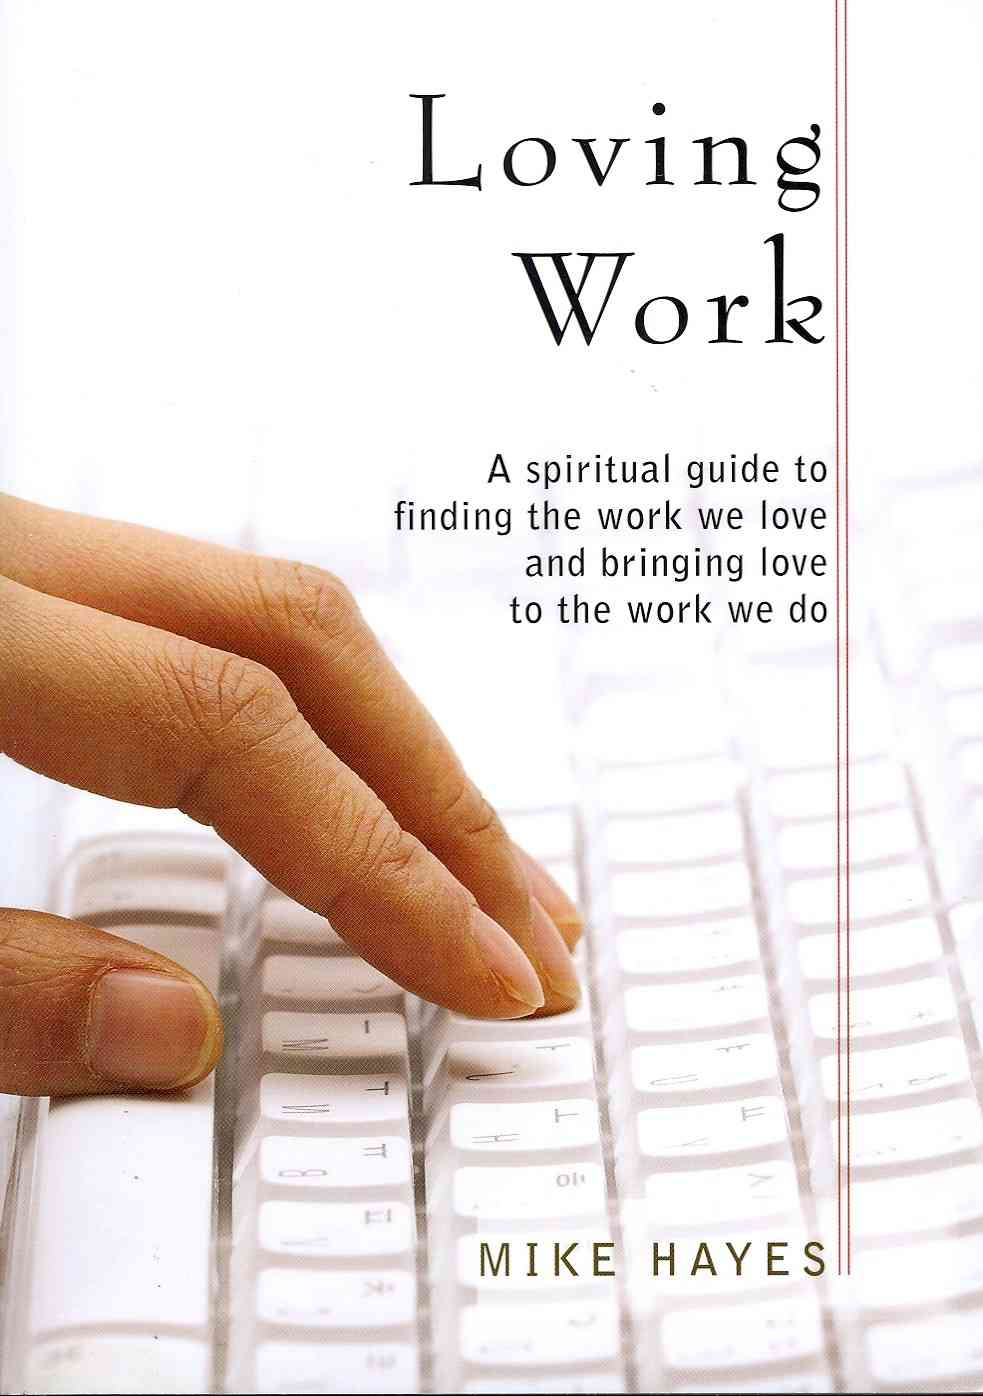 Loving Work: A spiritual guide to finding the work we love and bringing love to the work we do (Paperback)